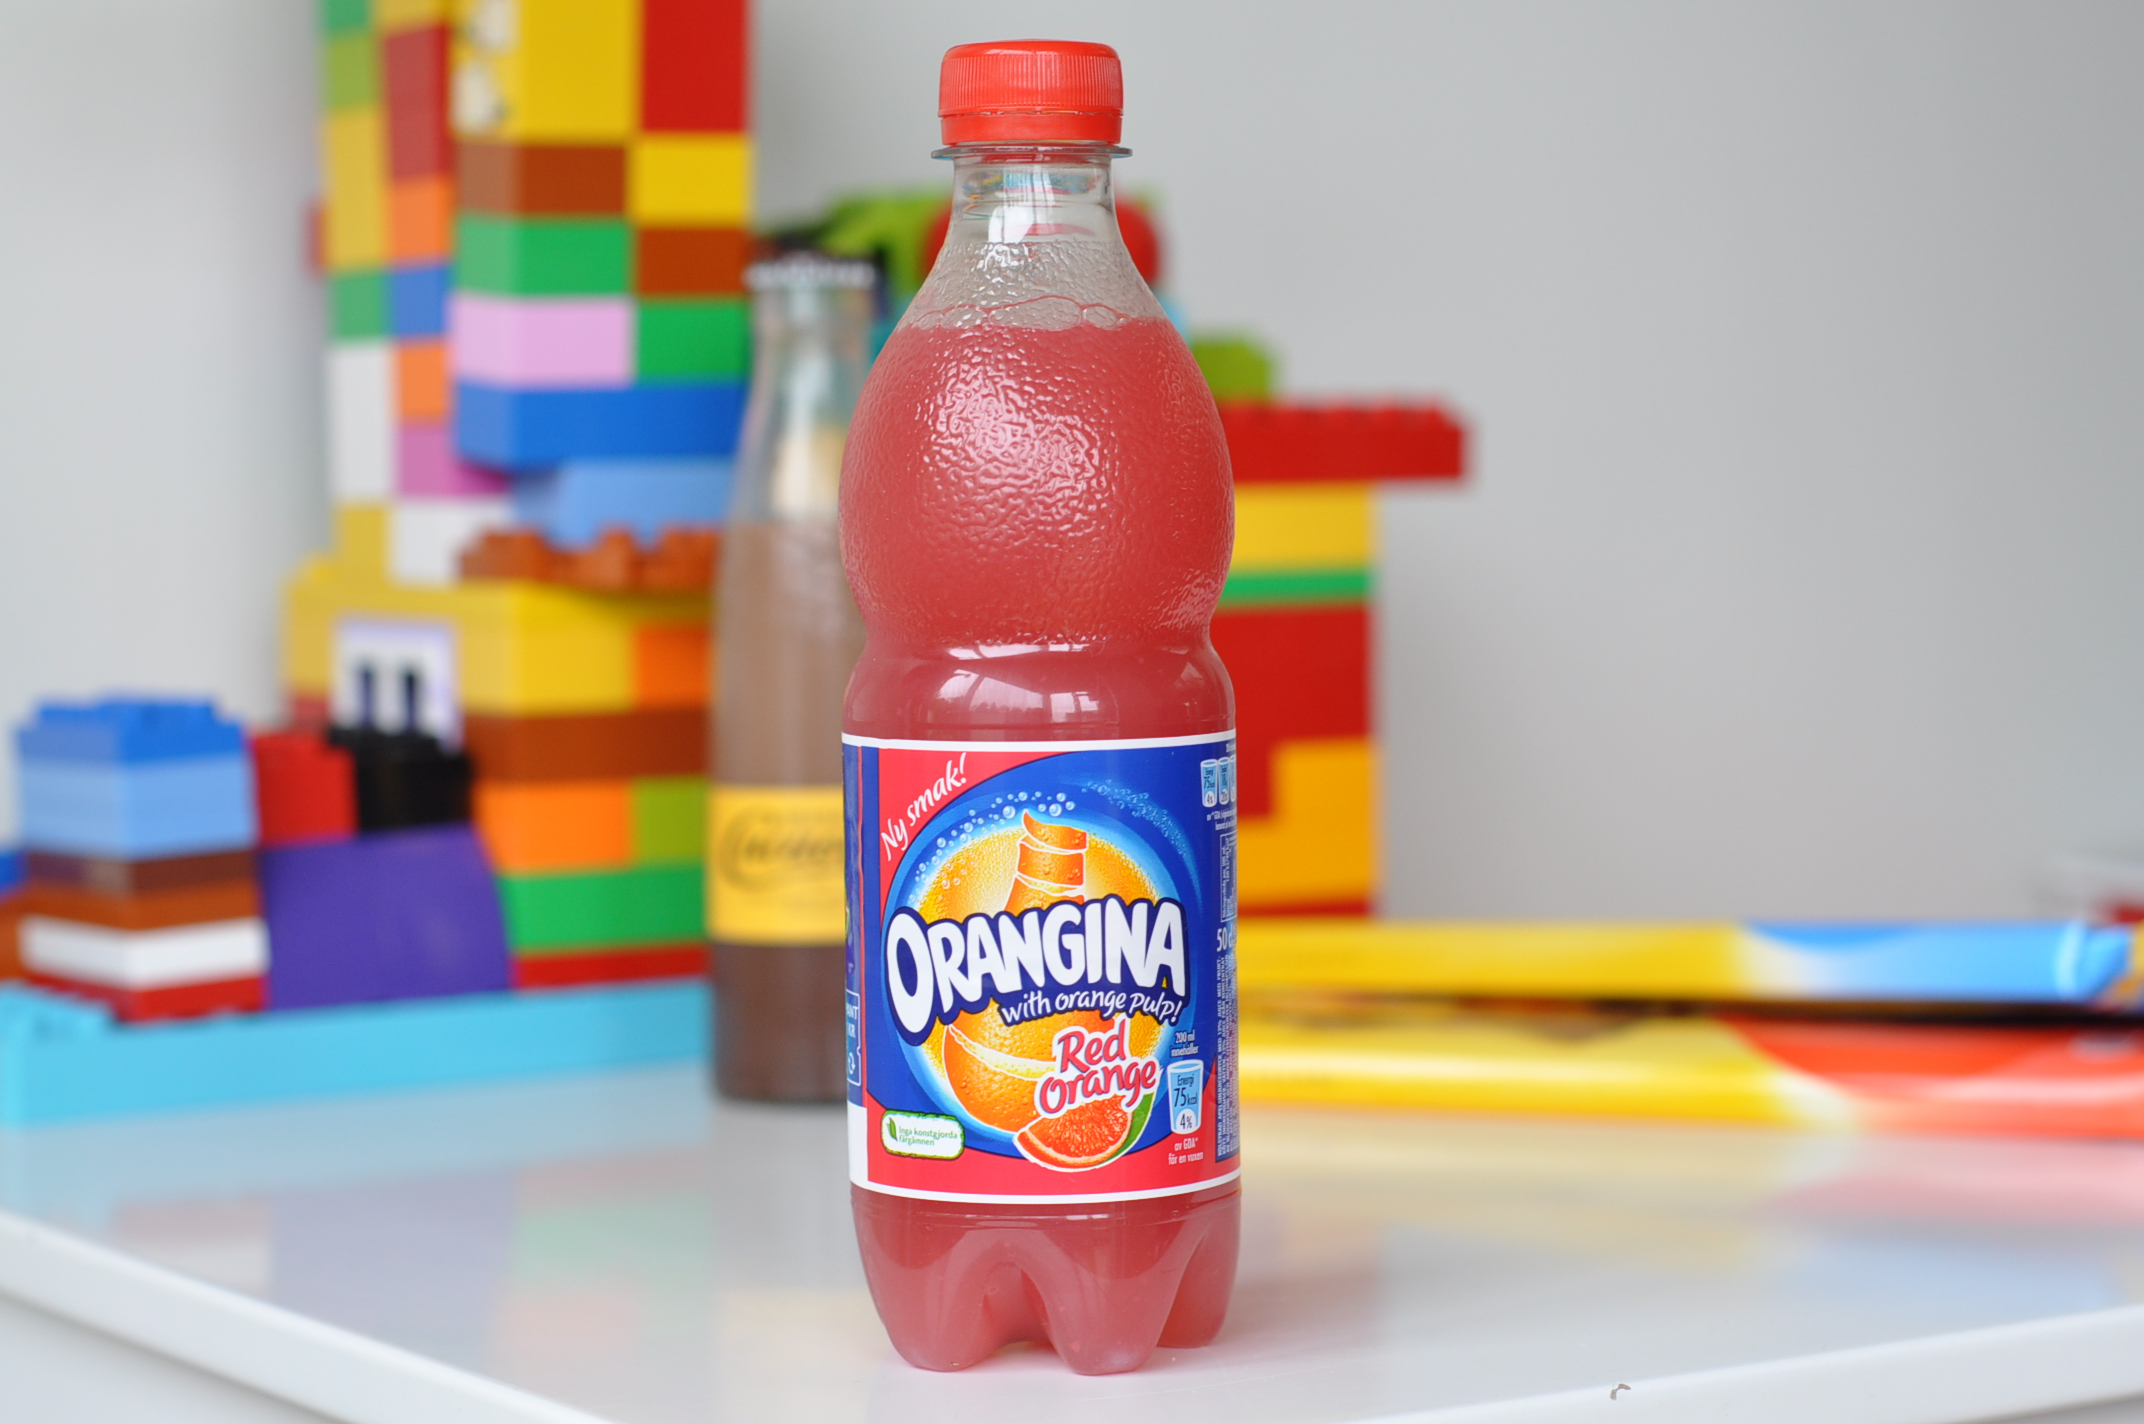 Orangina Red